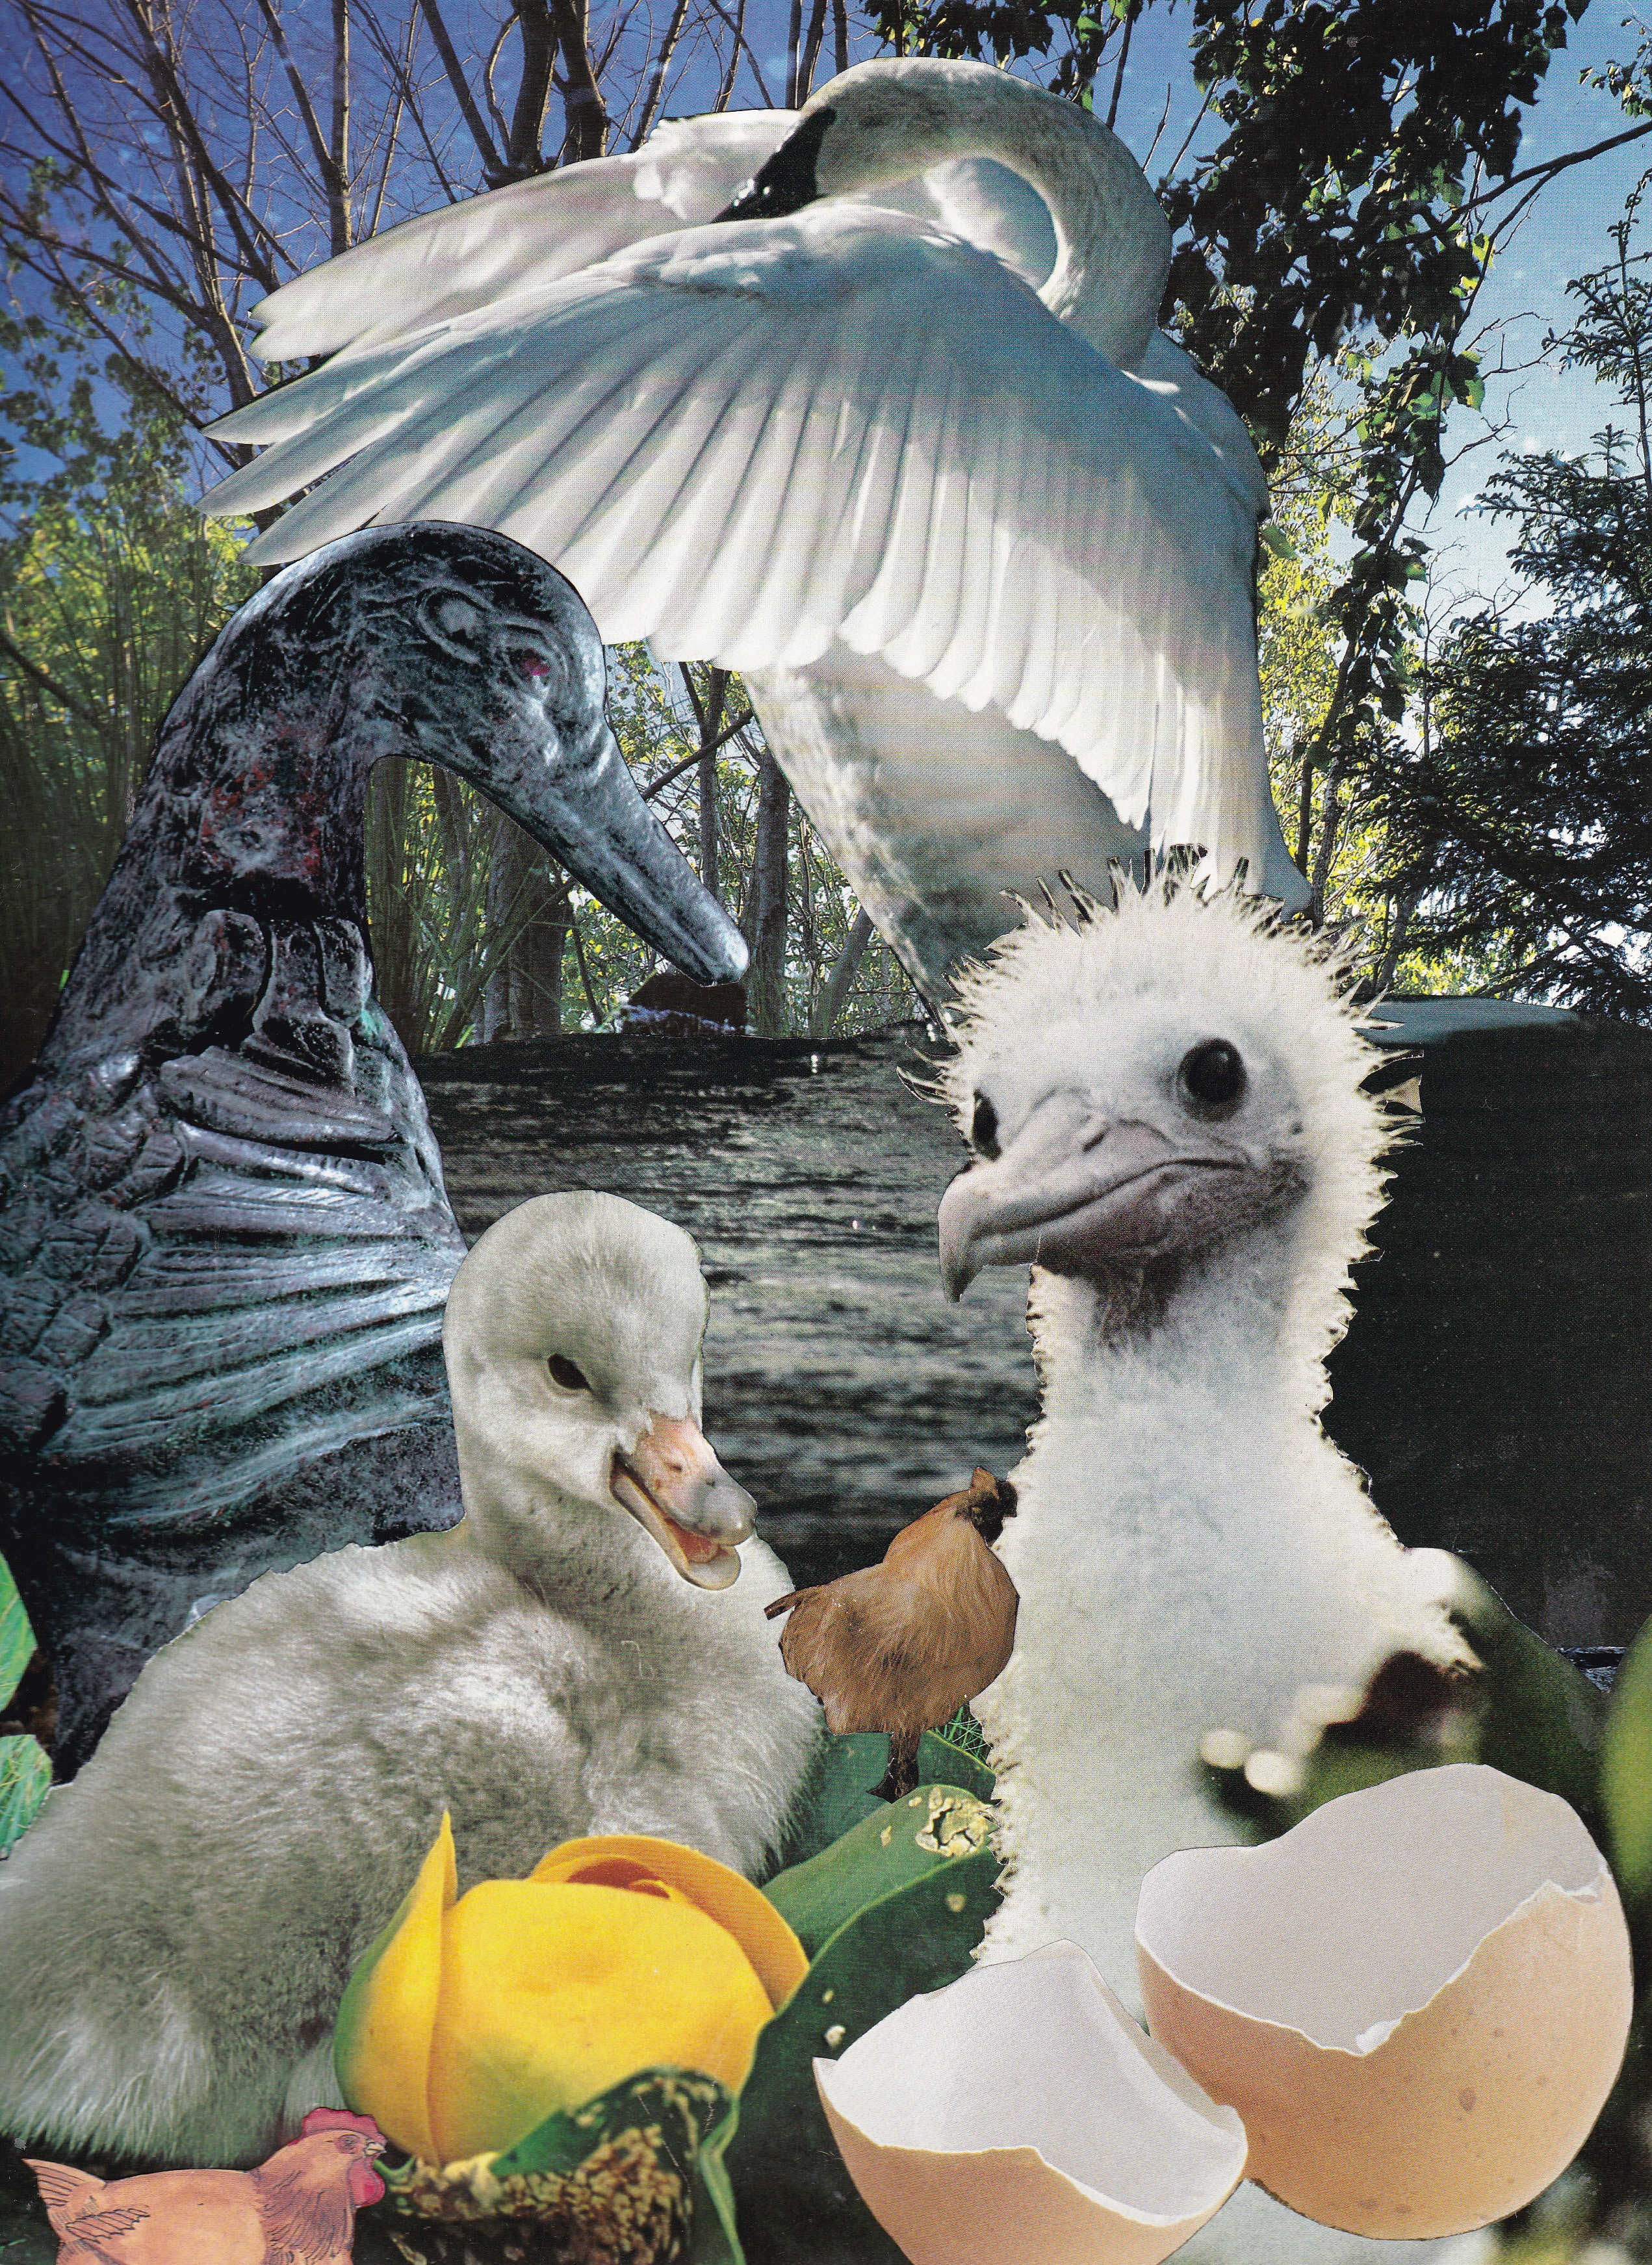 Il Fullxfull Irsr likewise Article Ee Adee X likewise Img also Maxresdefault besides Picmonkey Collage. on the ugly duckling book